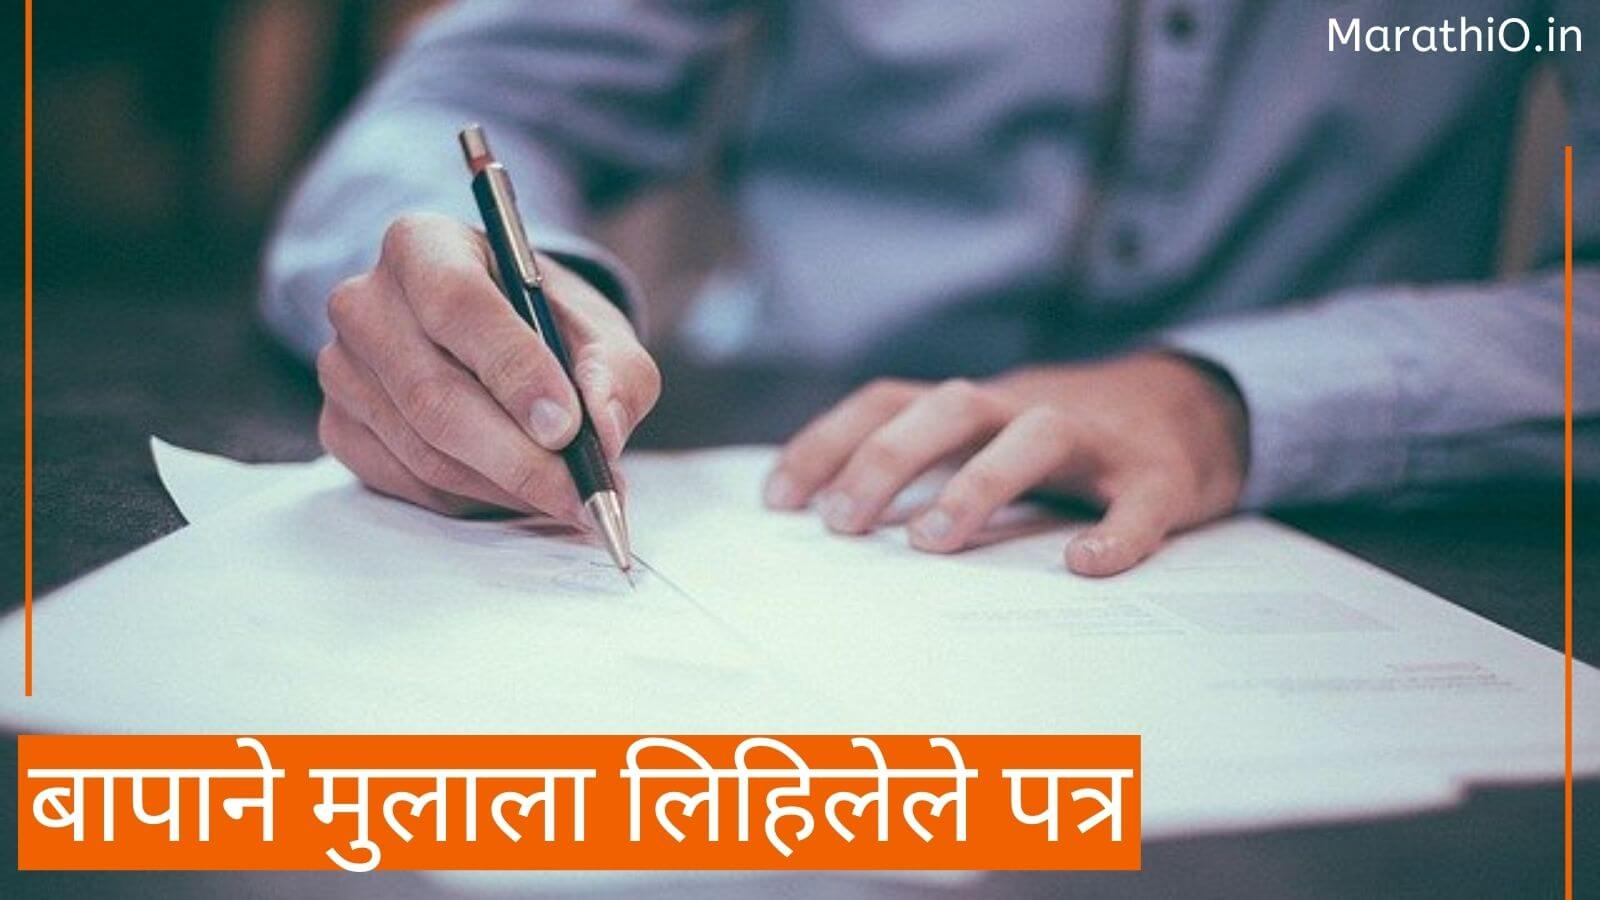 Poor Father's Letter In Marathi